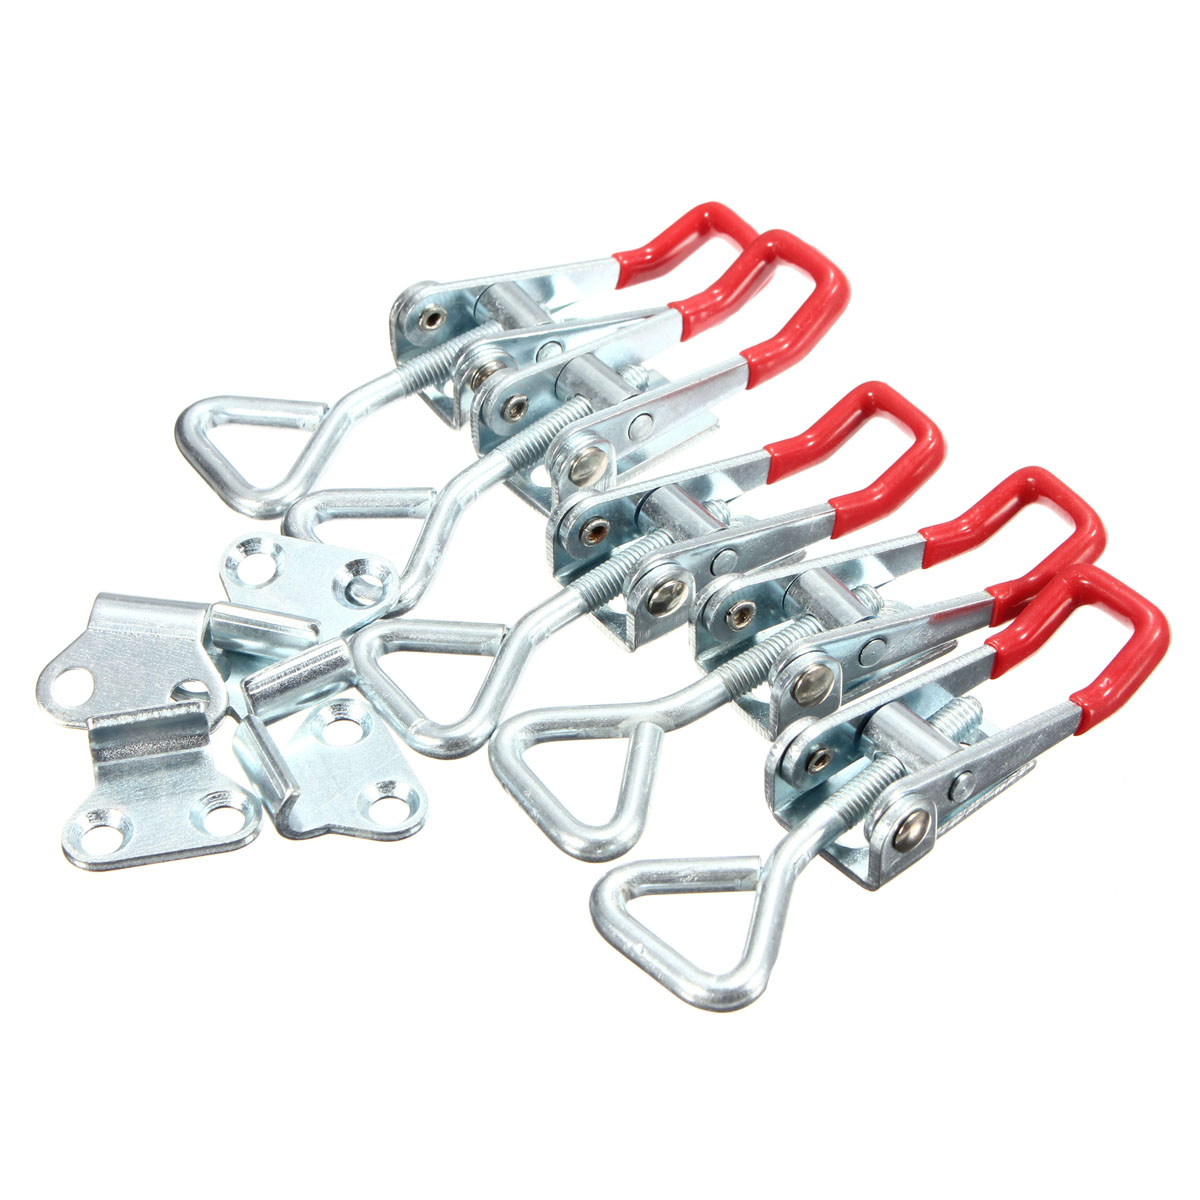 5pcs Adjustable Quick Holding Capacity Latch Hand Tool Toggle Clamp 100KG/220lbs Galvanization Adjustable Fixture(China (Mainland))